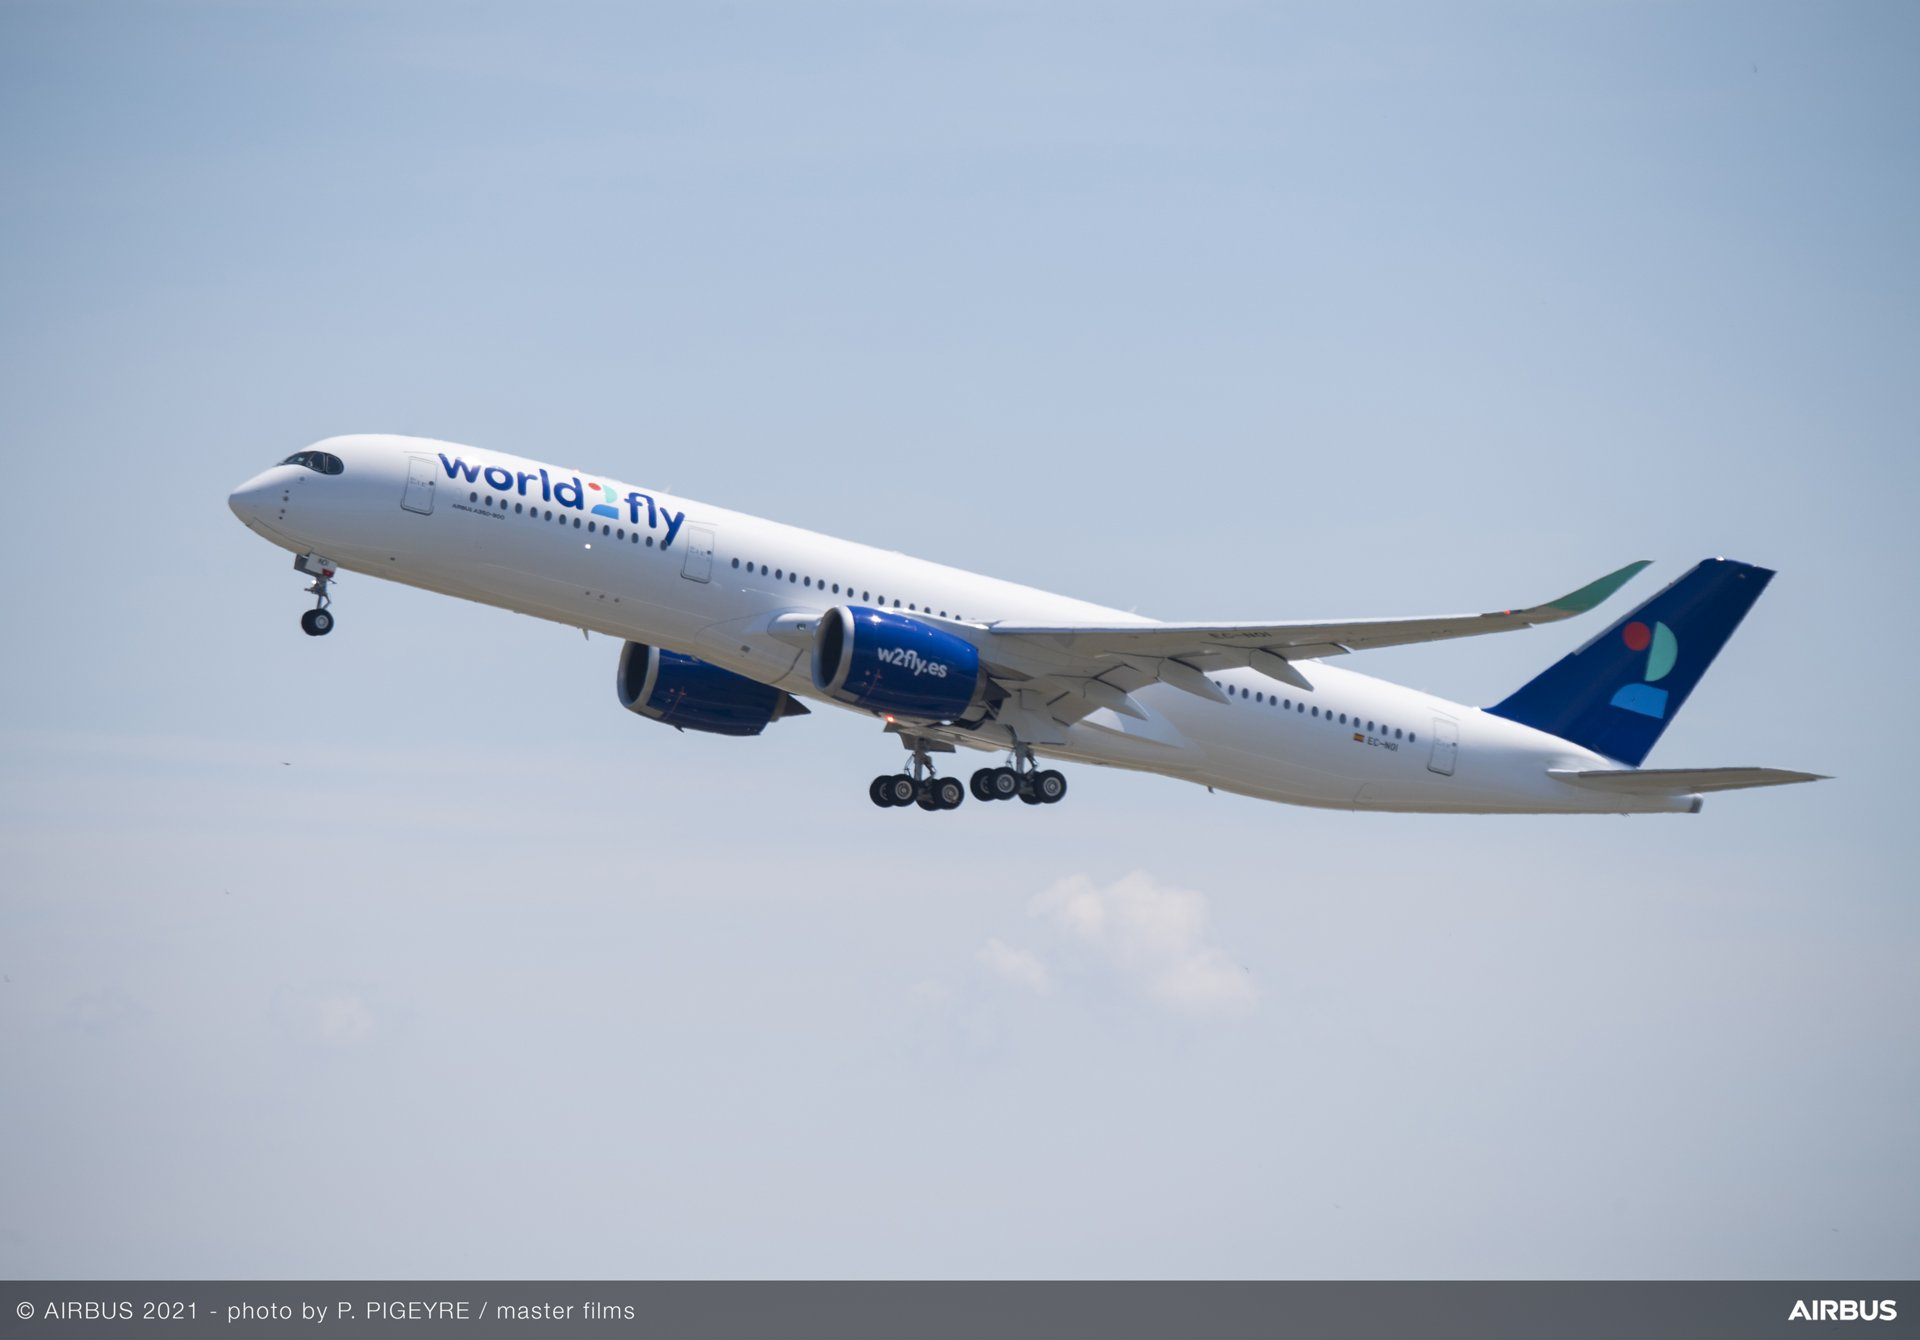 The airline world2fly received its first A350-900